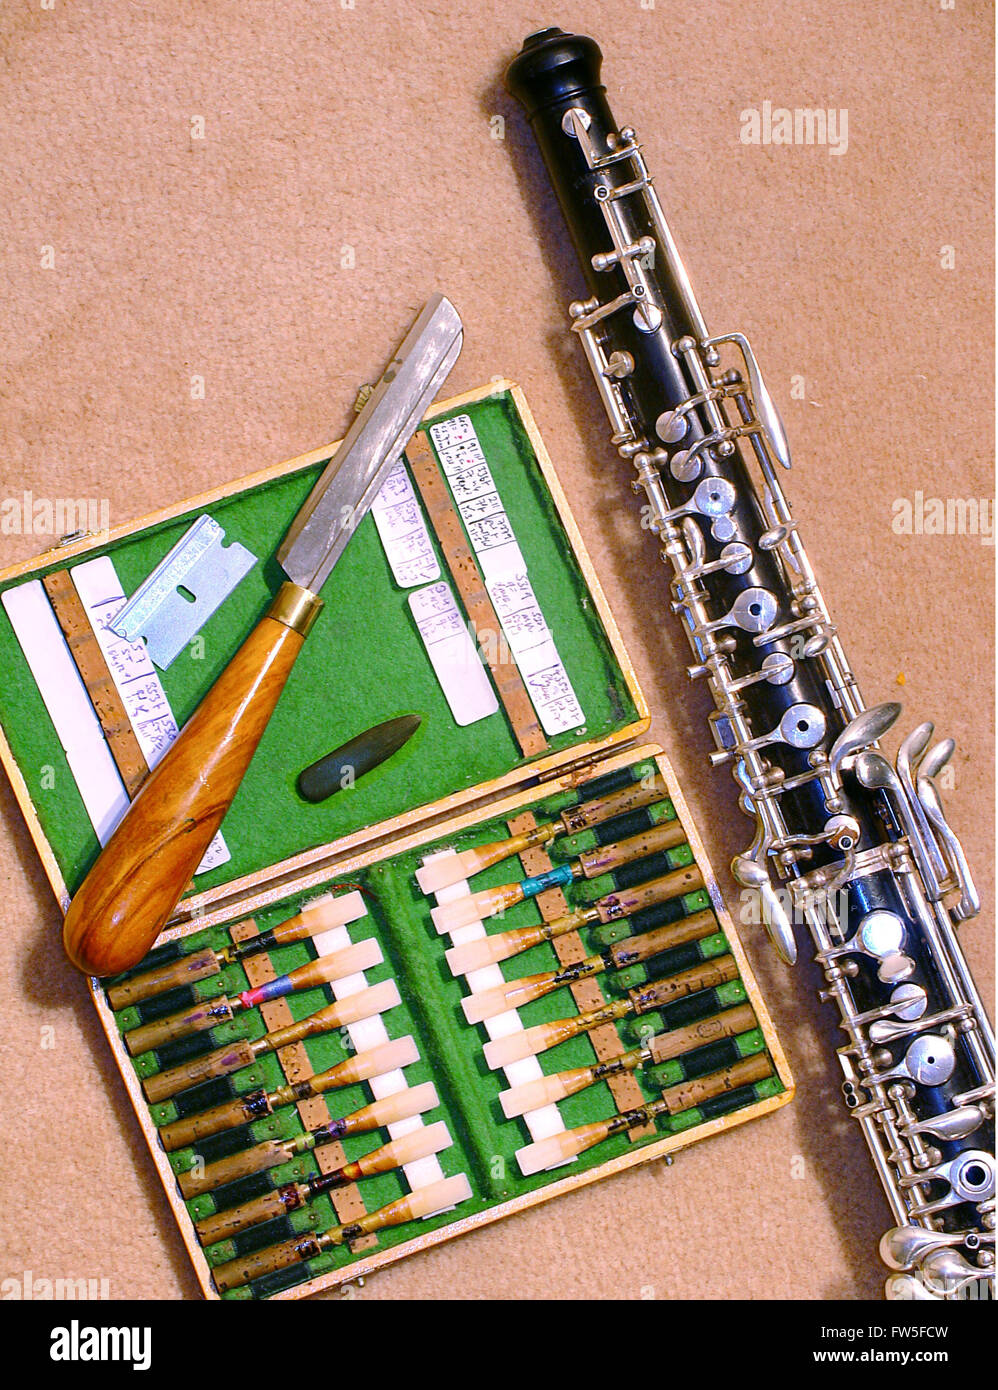 Oboe with box of reeds, scraping knife, 'tounge', and razor blade. Written notes refer to history of usage. - Stock Image